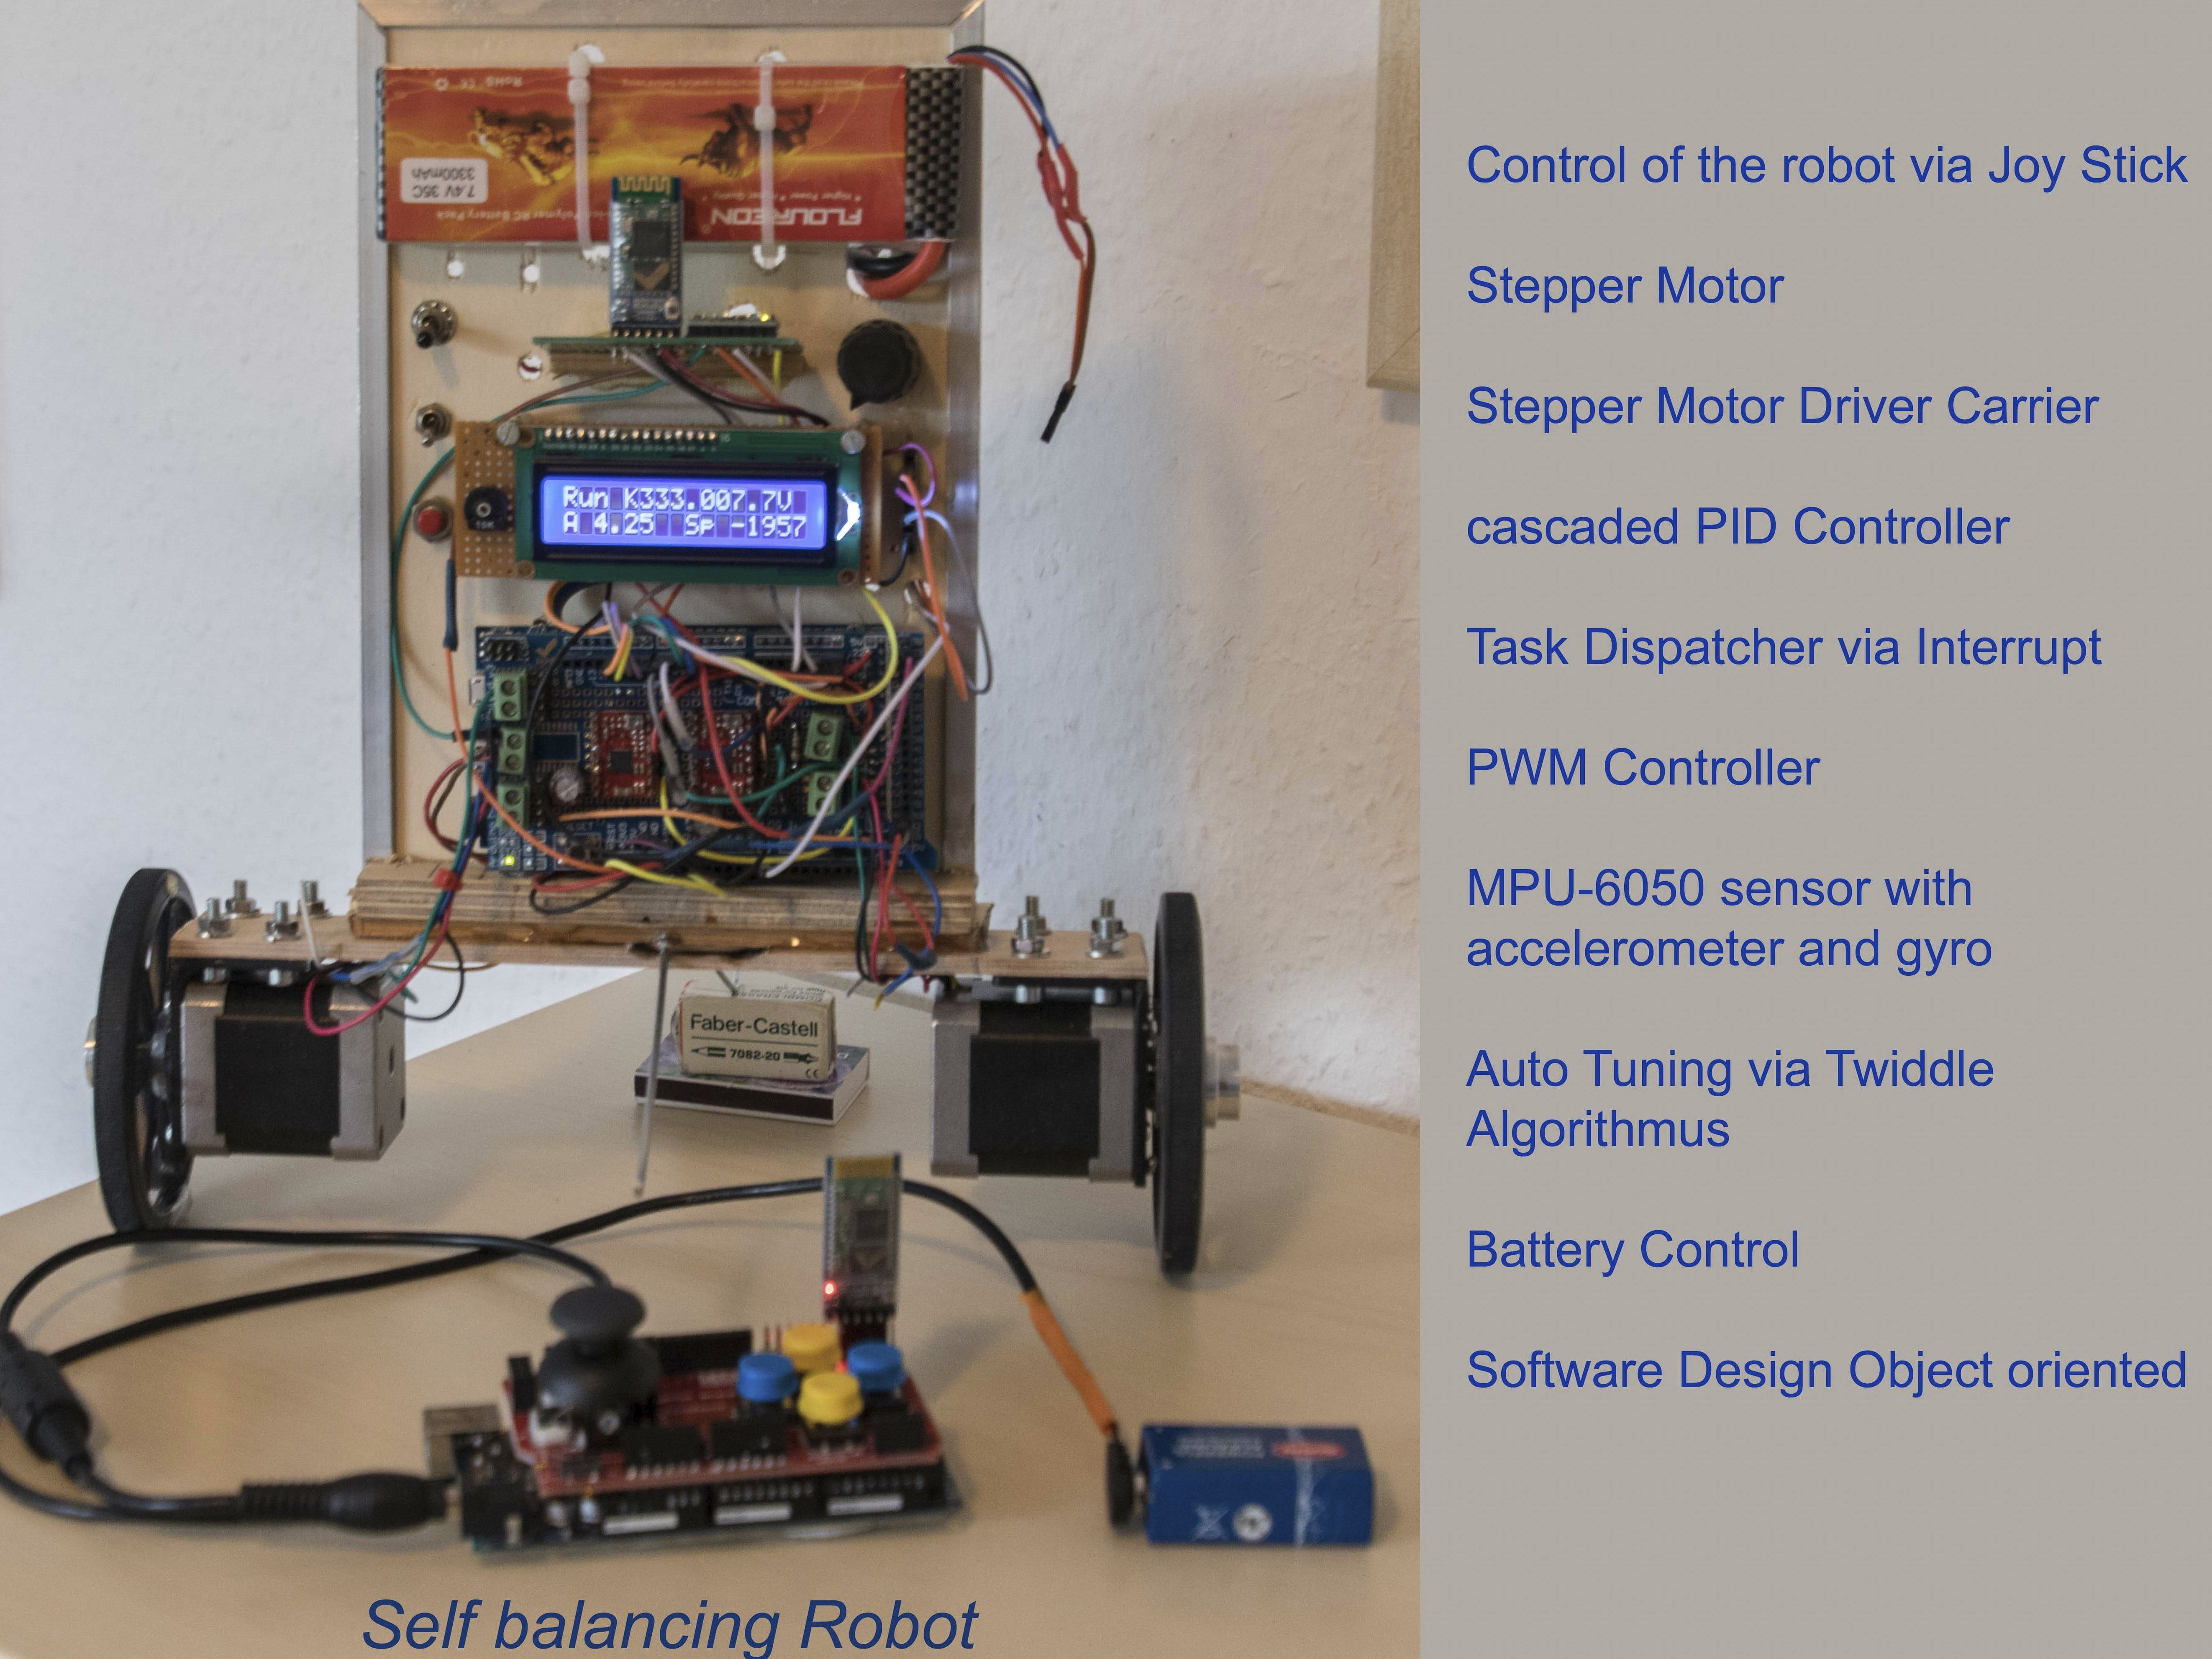 two wheeled self balancing robot with stepper motor.